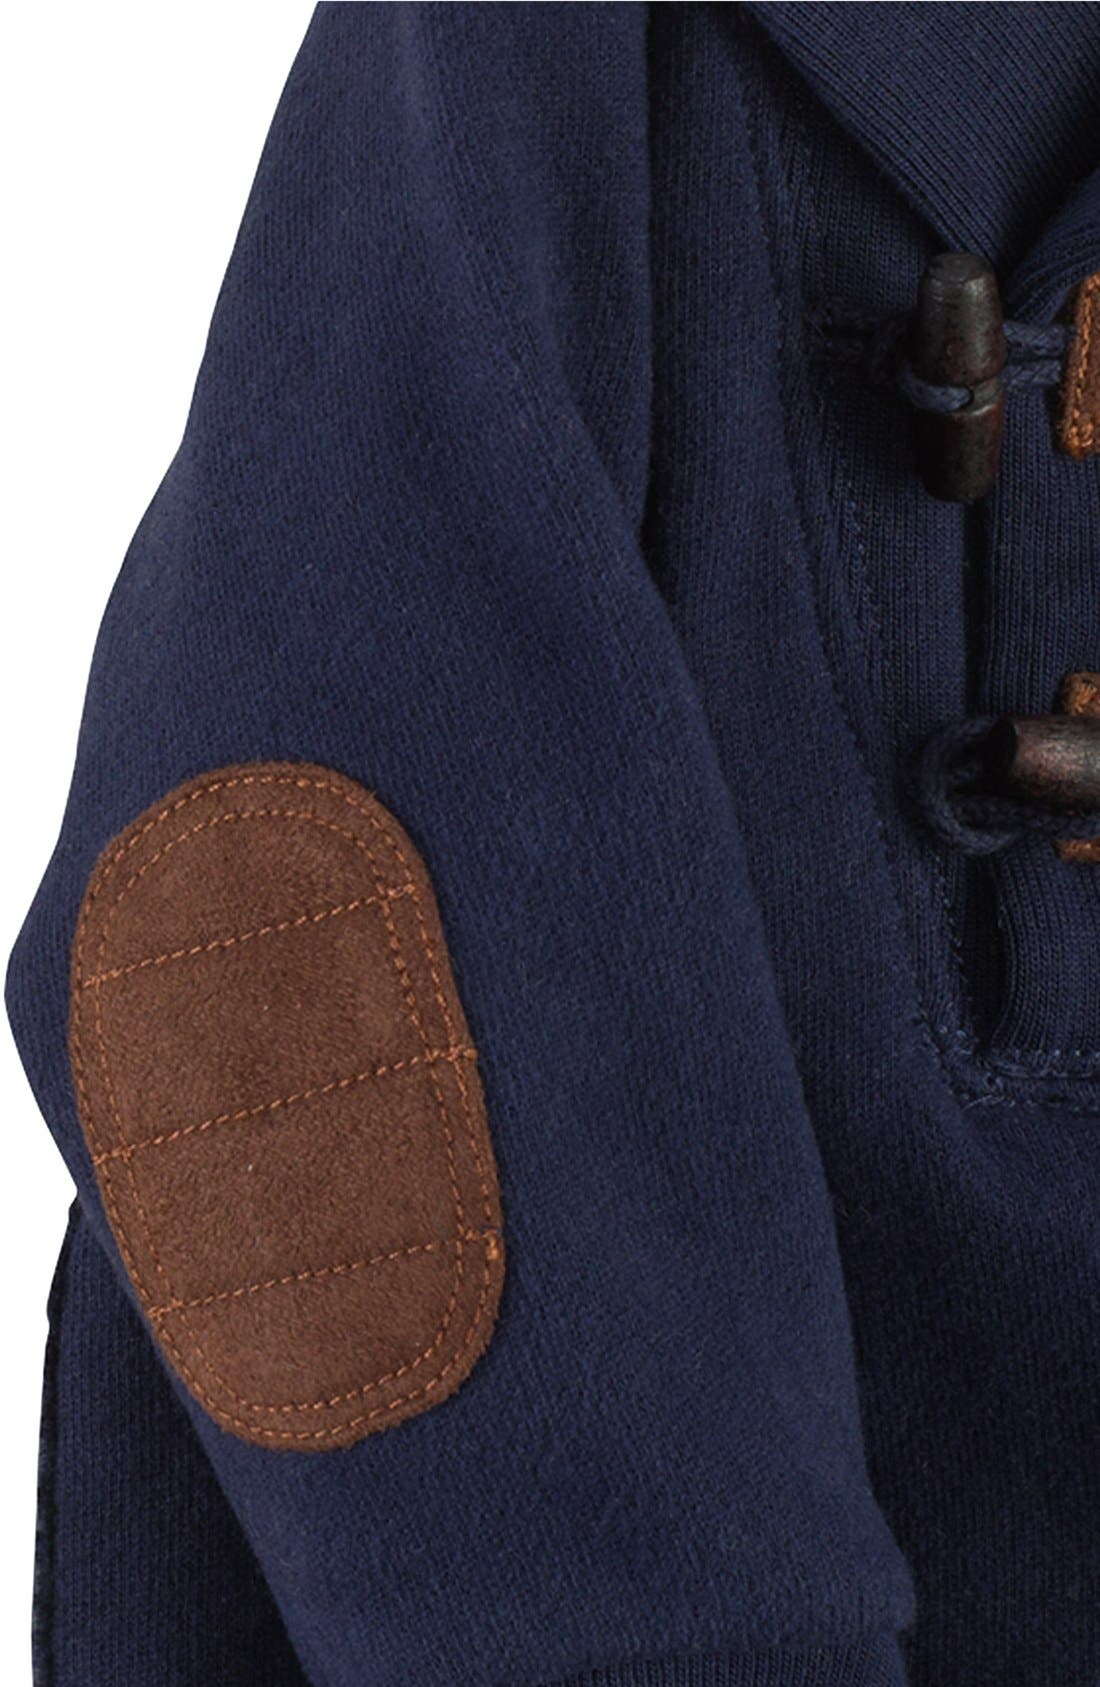 Alternate Image 2  - Ralph Lauren Shawl Collar One-Piece (Baby Boys)